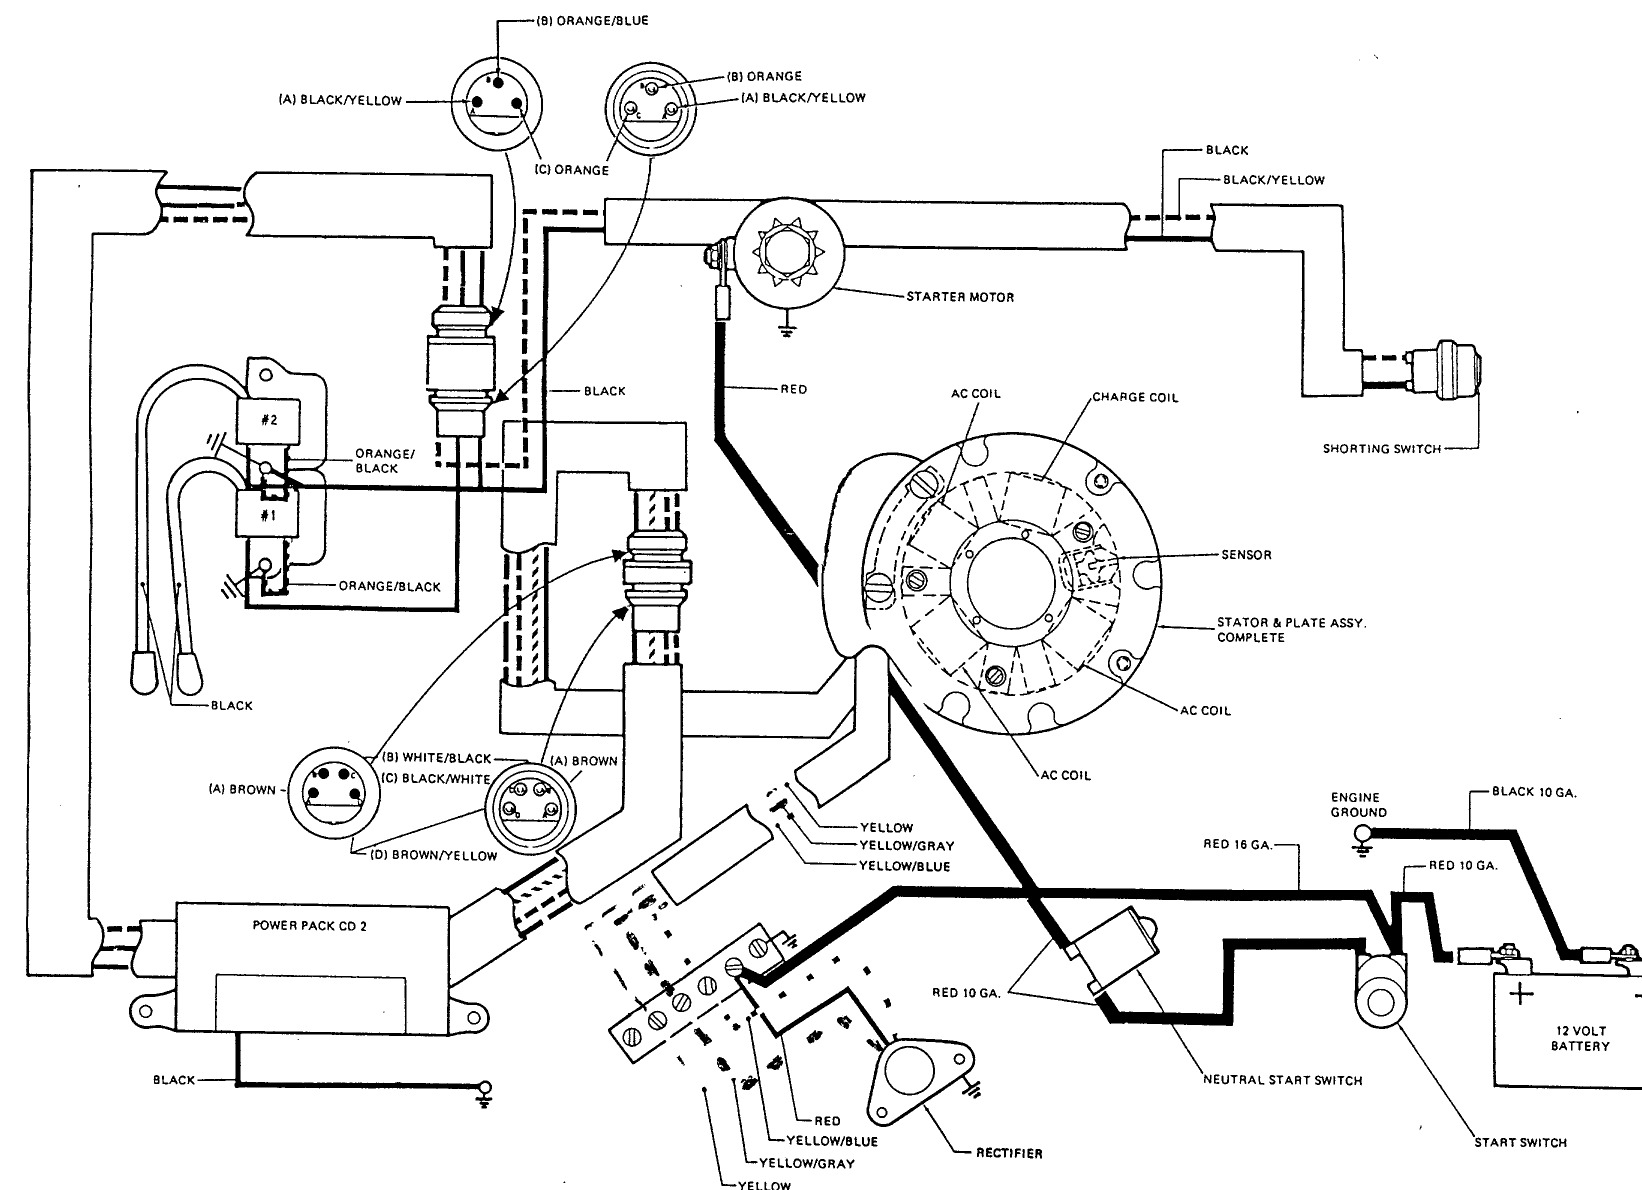 [DIAGRAM] Evinrude 9 Electric Start Wiring Diagram FULL